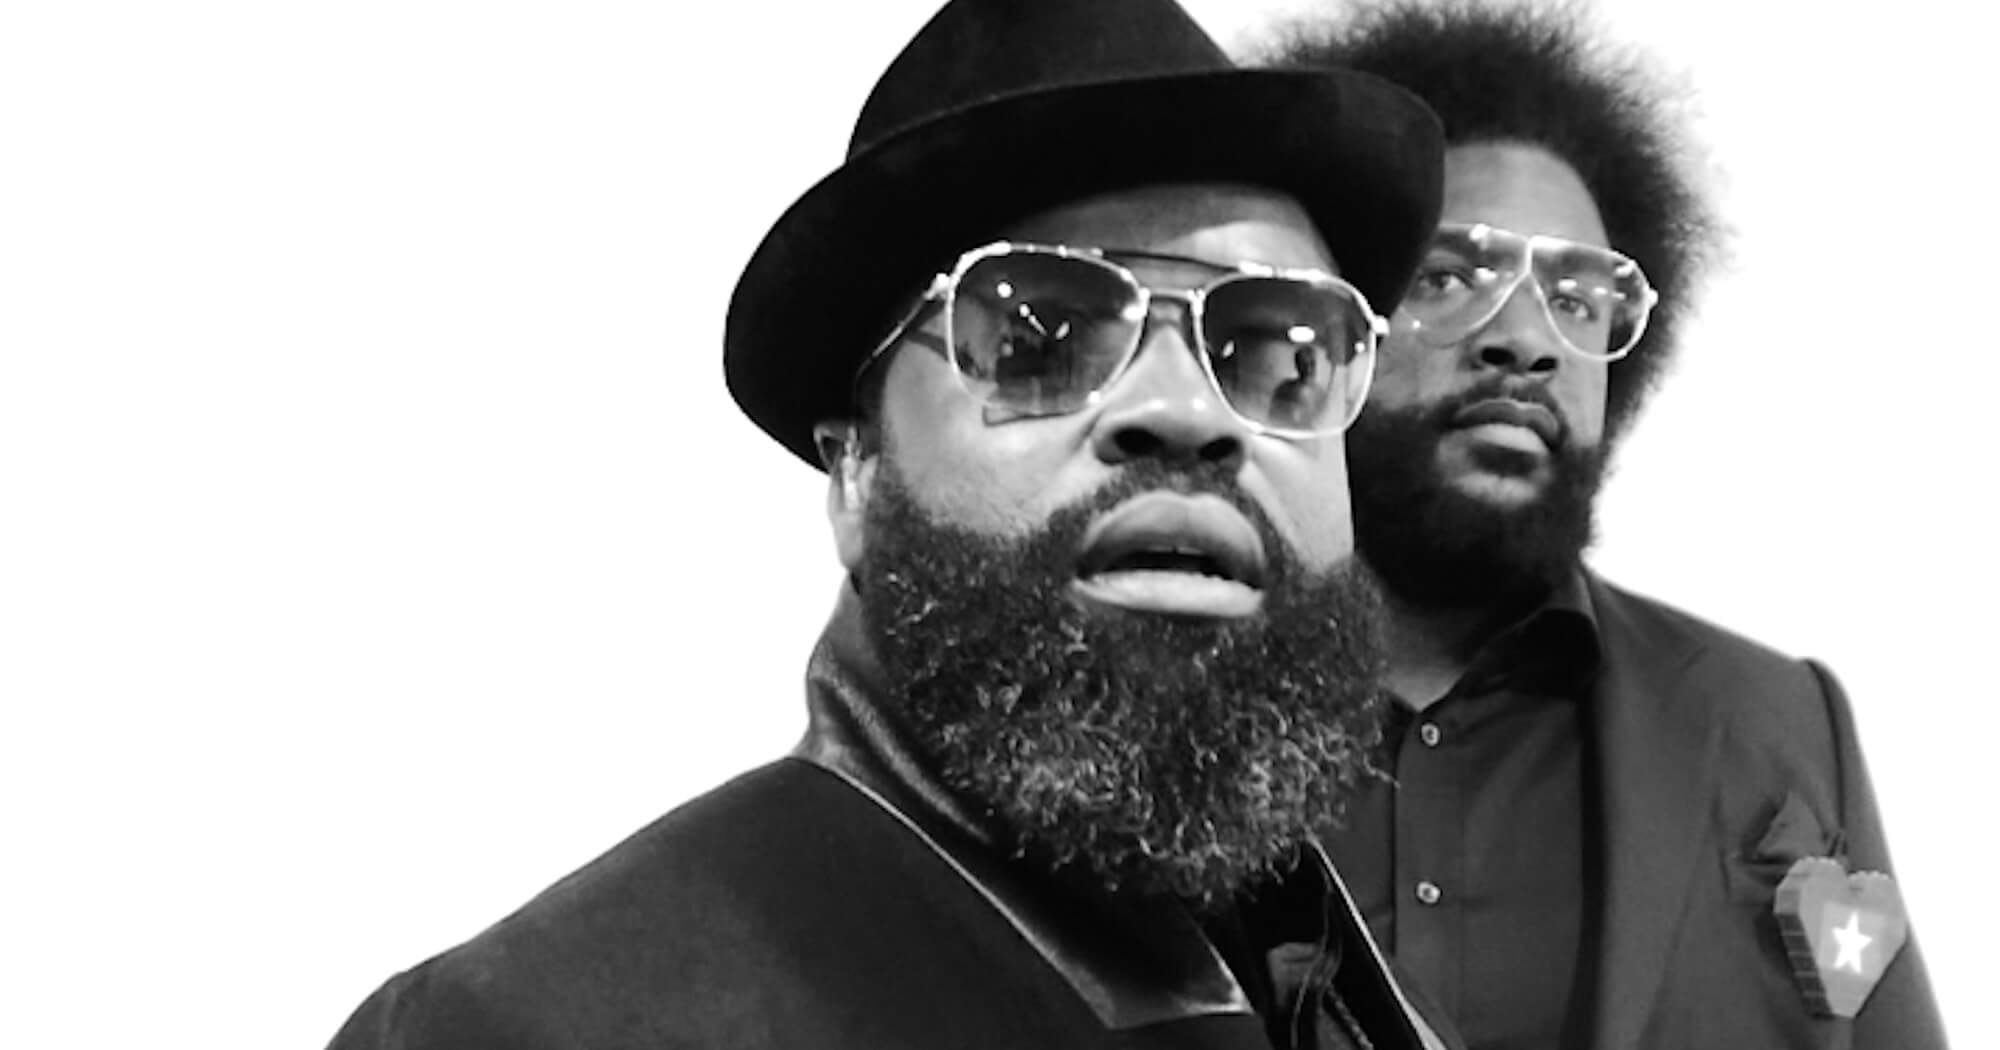 The Roots will perform at the Annual Festival of the Lakes (Hammond, Indiana) on Saturday, July 20, 2019